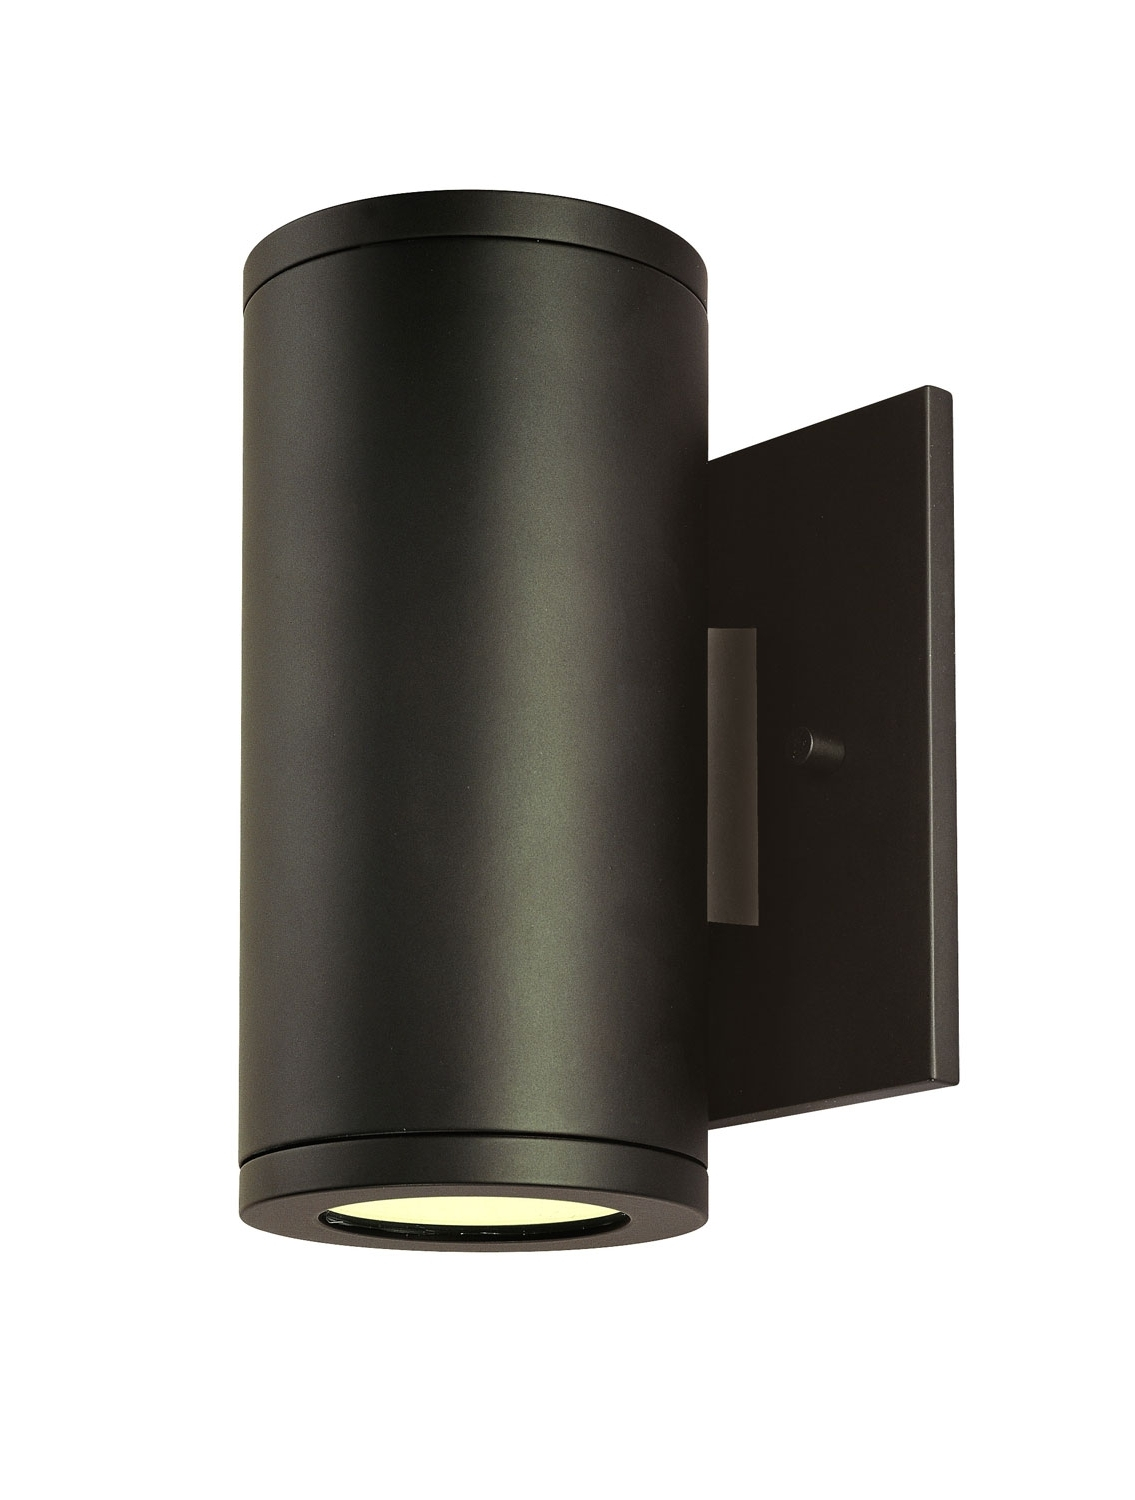 Most Up To Date Quality Outdoor Wall Lighting With Regard To Light : Fancy Lamp Shades For Wall Lights About Remodel Mount Solar (View 10 of 20)